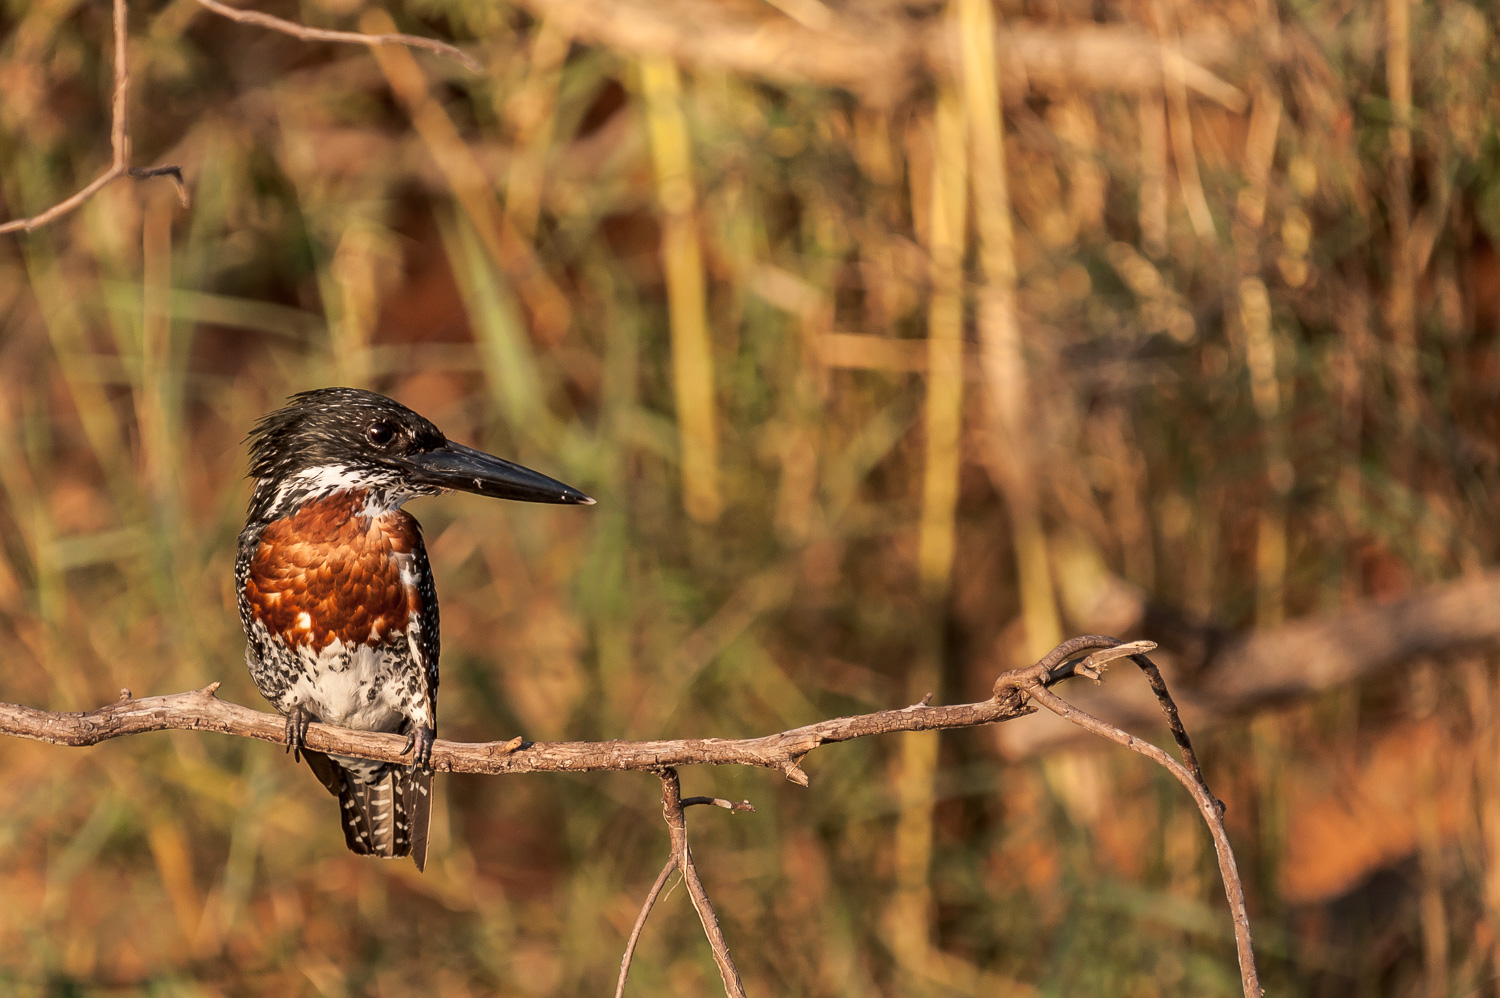 Male Kingfisher, Cubango River, Caprivi Strip Namibia